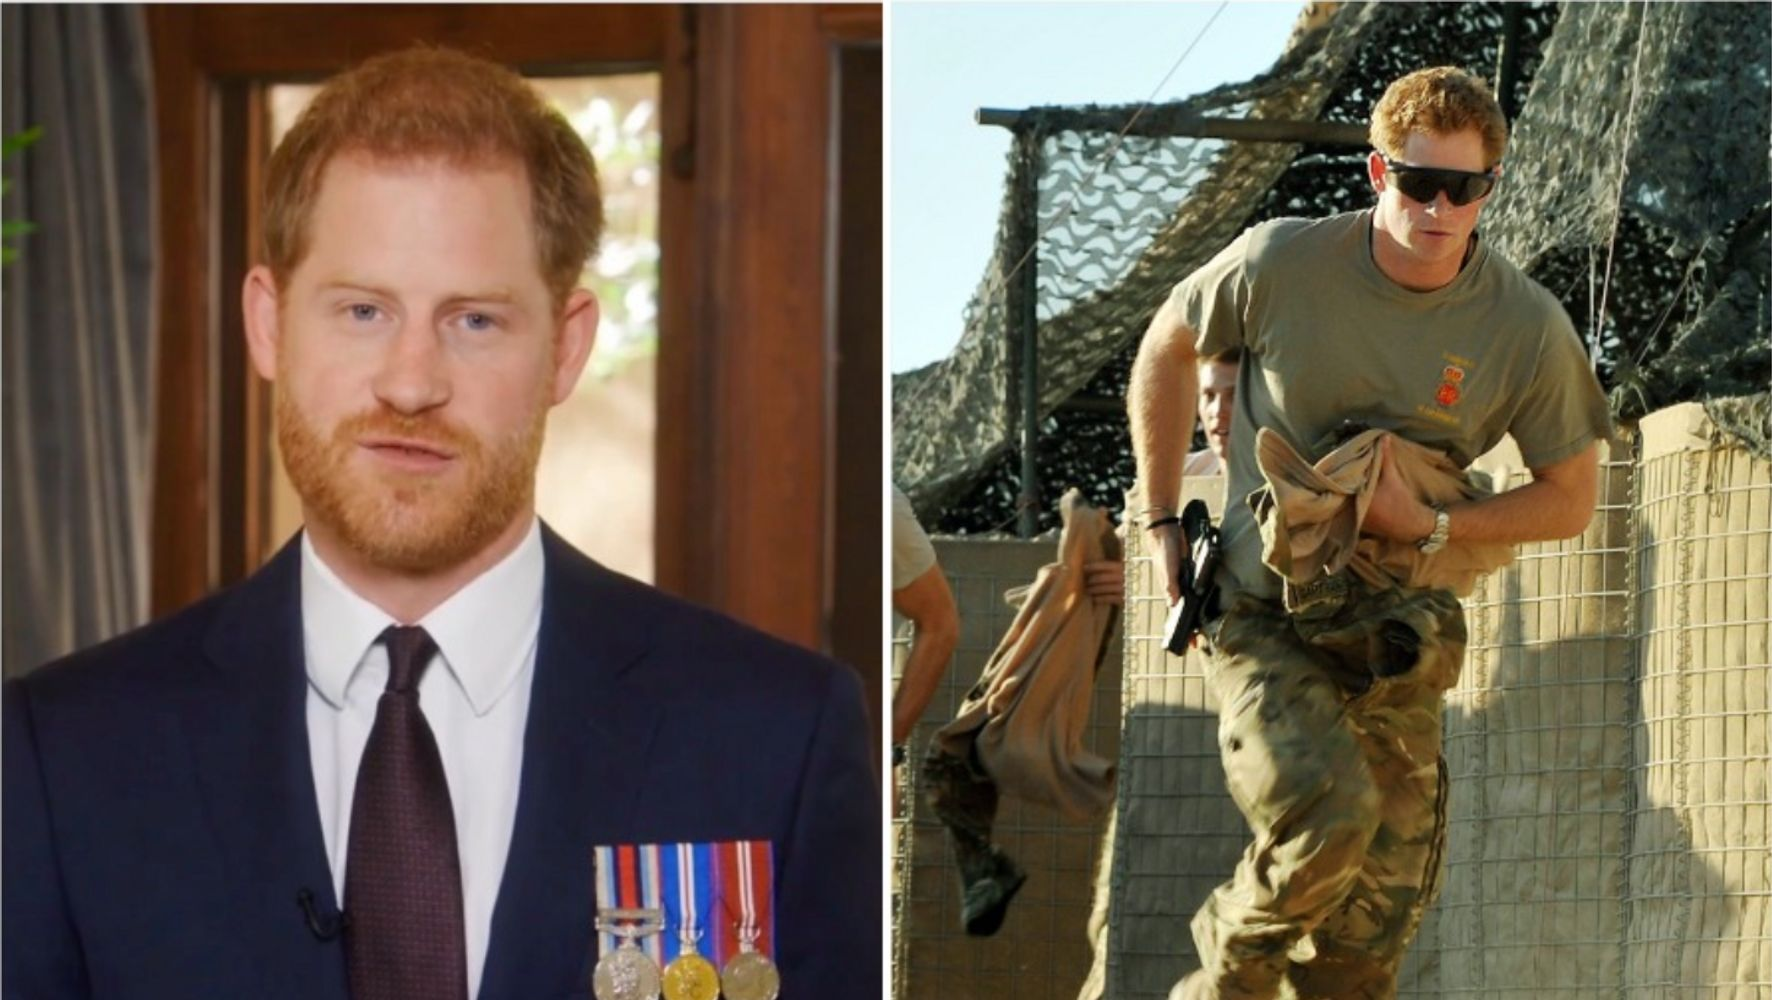 Prince Harry Says Military Service Changed His Life 'For The Better'